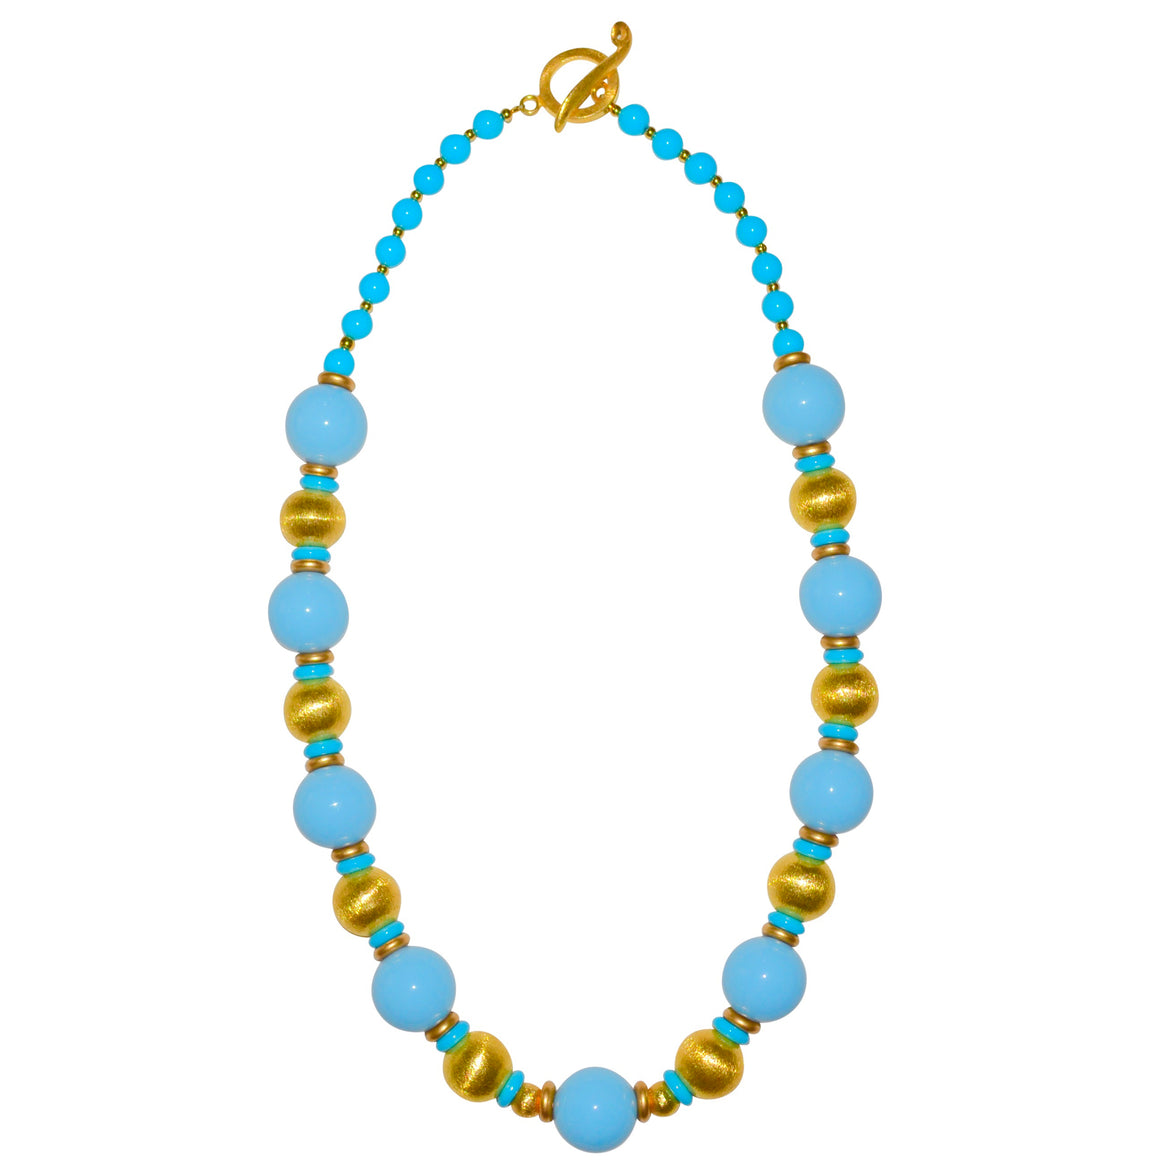 BLAKE LONG NECKLACE IN LIGHT BLUE